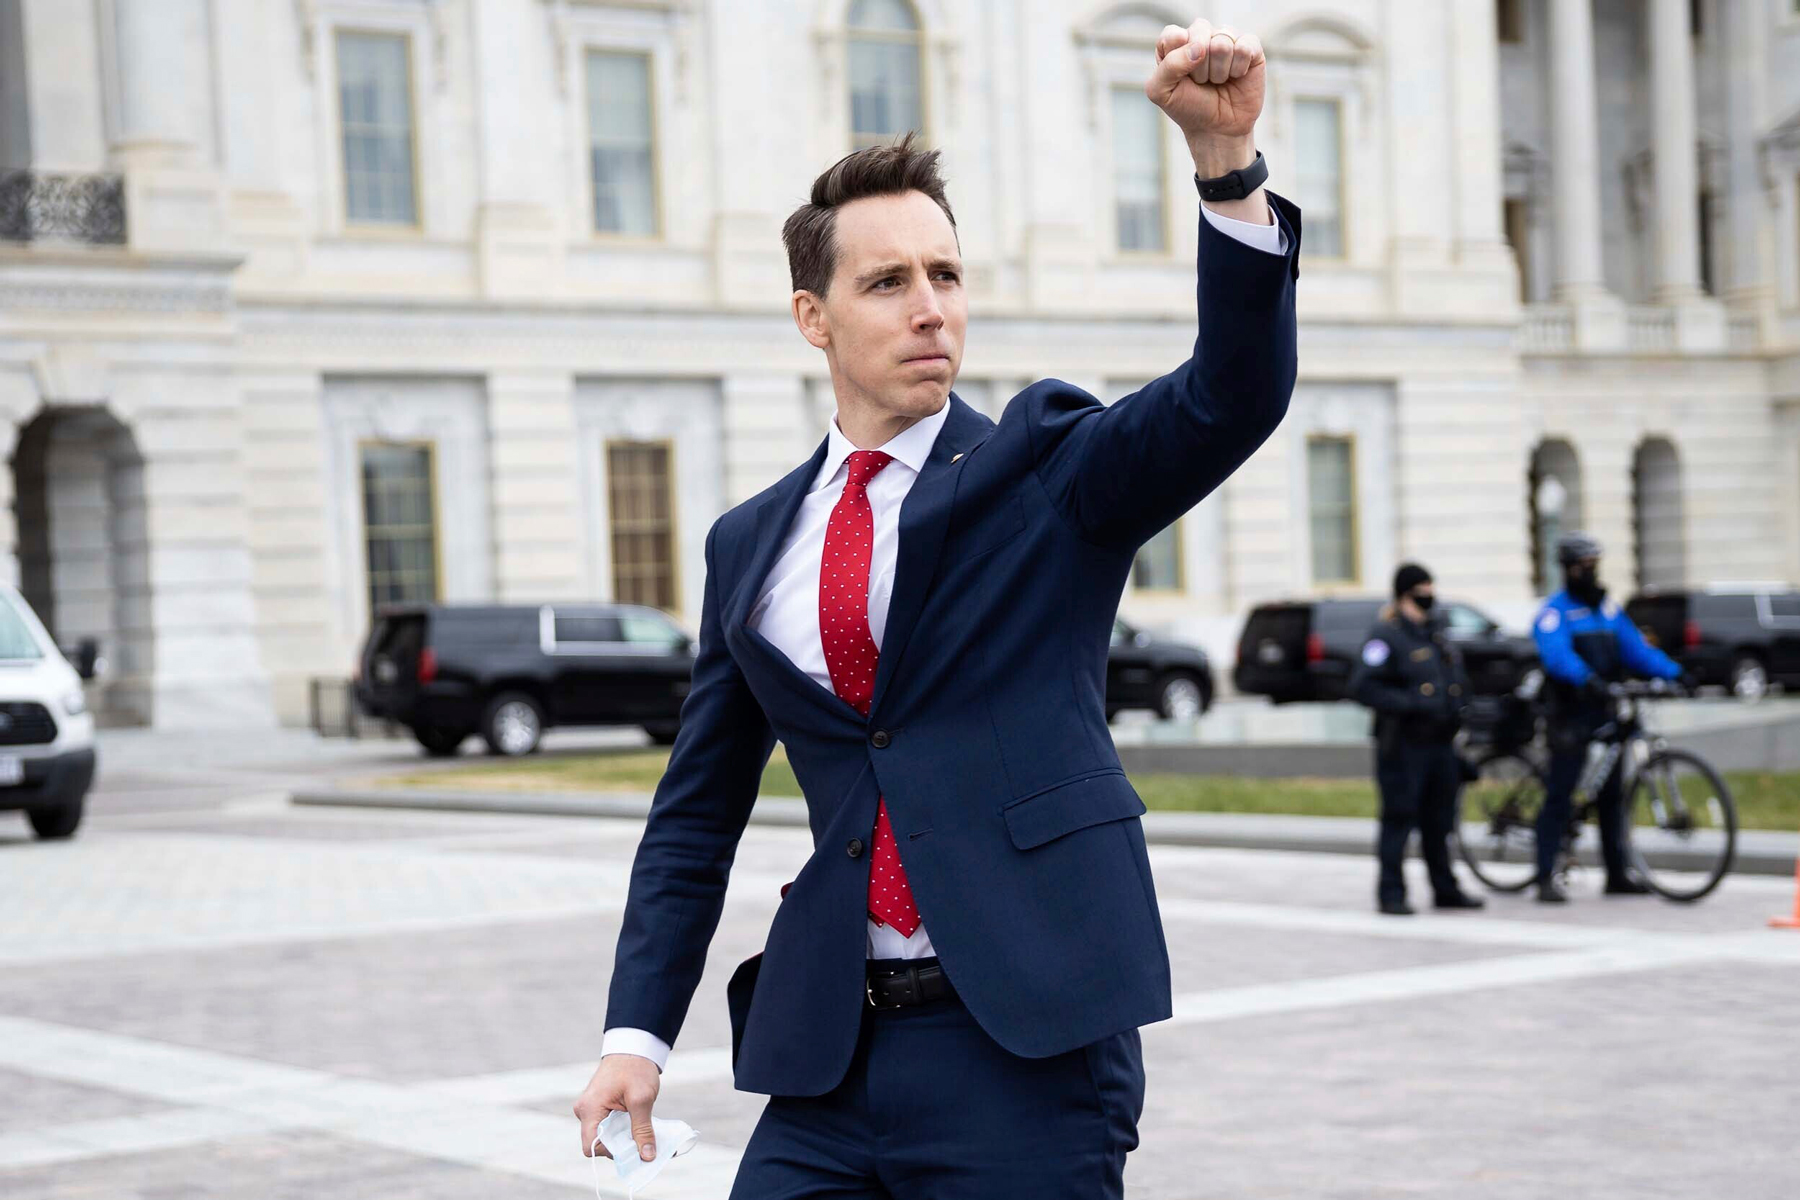 Sen. Josh Hawley (R-Mo.) gestures toward a crowd of supporters of President Donald Trump gathered outside the U.S. Capitol to protest the certification of President-elect Joe Biden's electoral college victory Jan. 6, 2021 at the US Capitol in Washington, DC. Some demonstrators later breached security and stormed the Capitol. (Francis Chung/E&E News and Politico via AP Images)